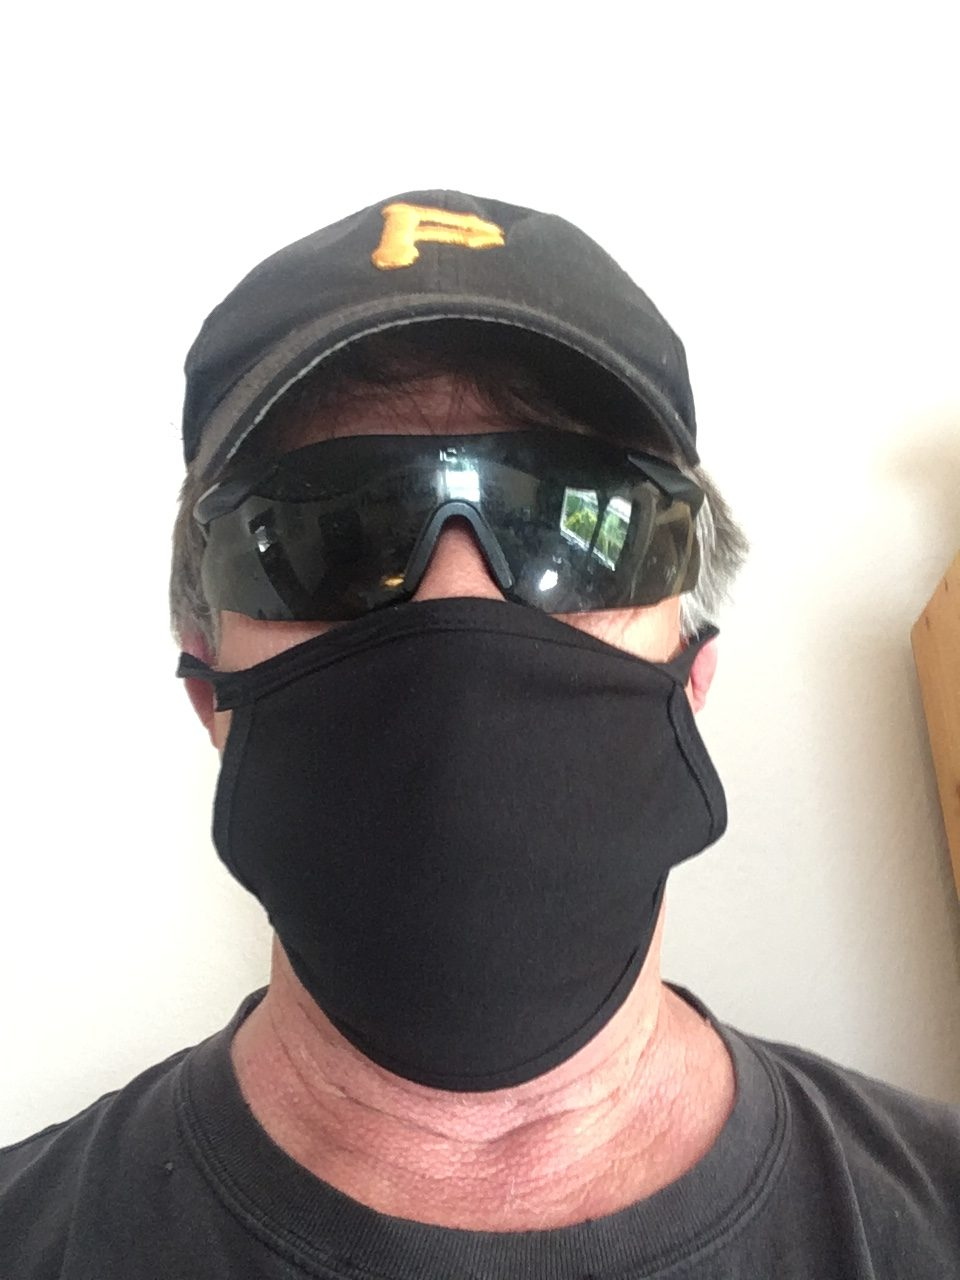 A man wears a cap, glasses, and a black mask